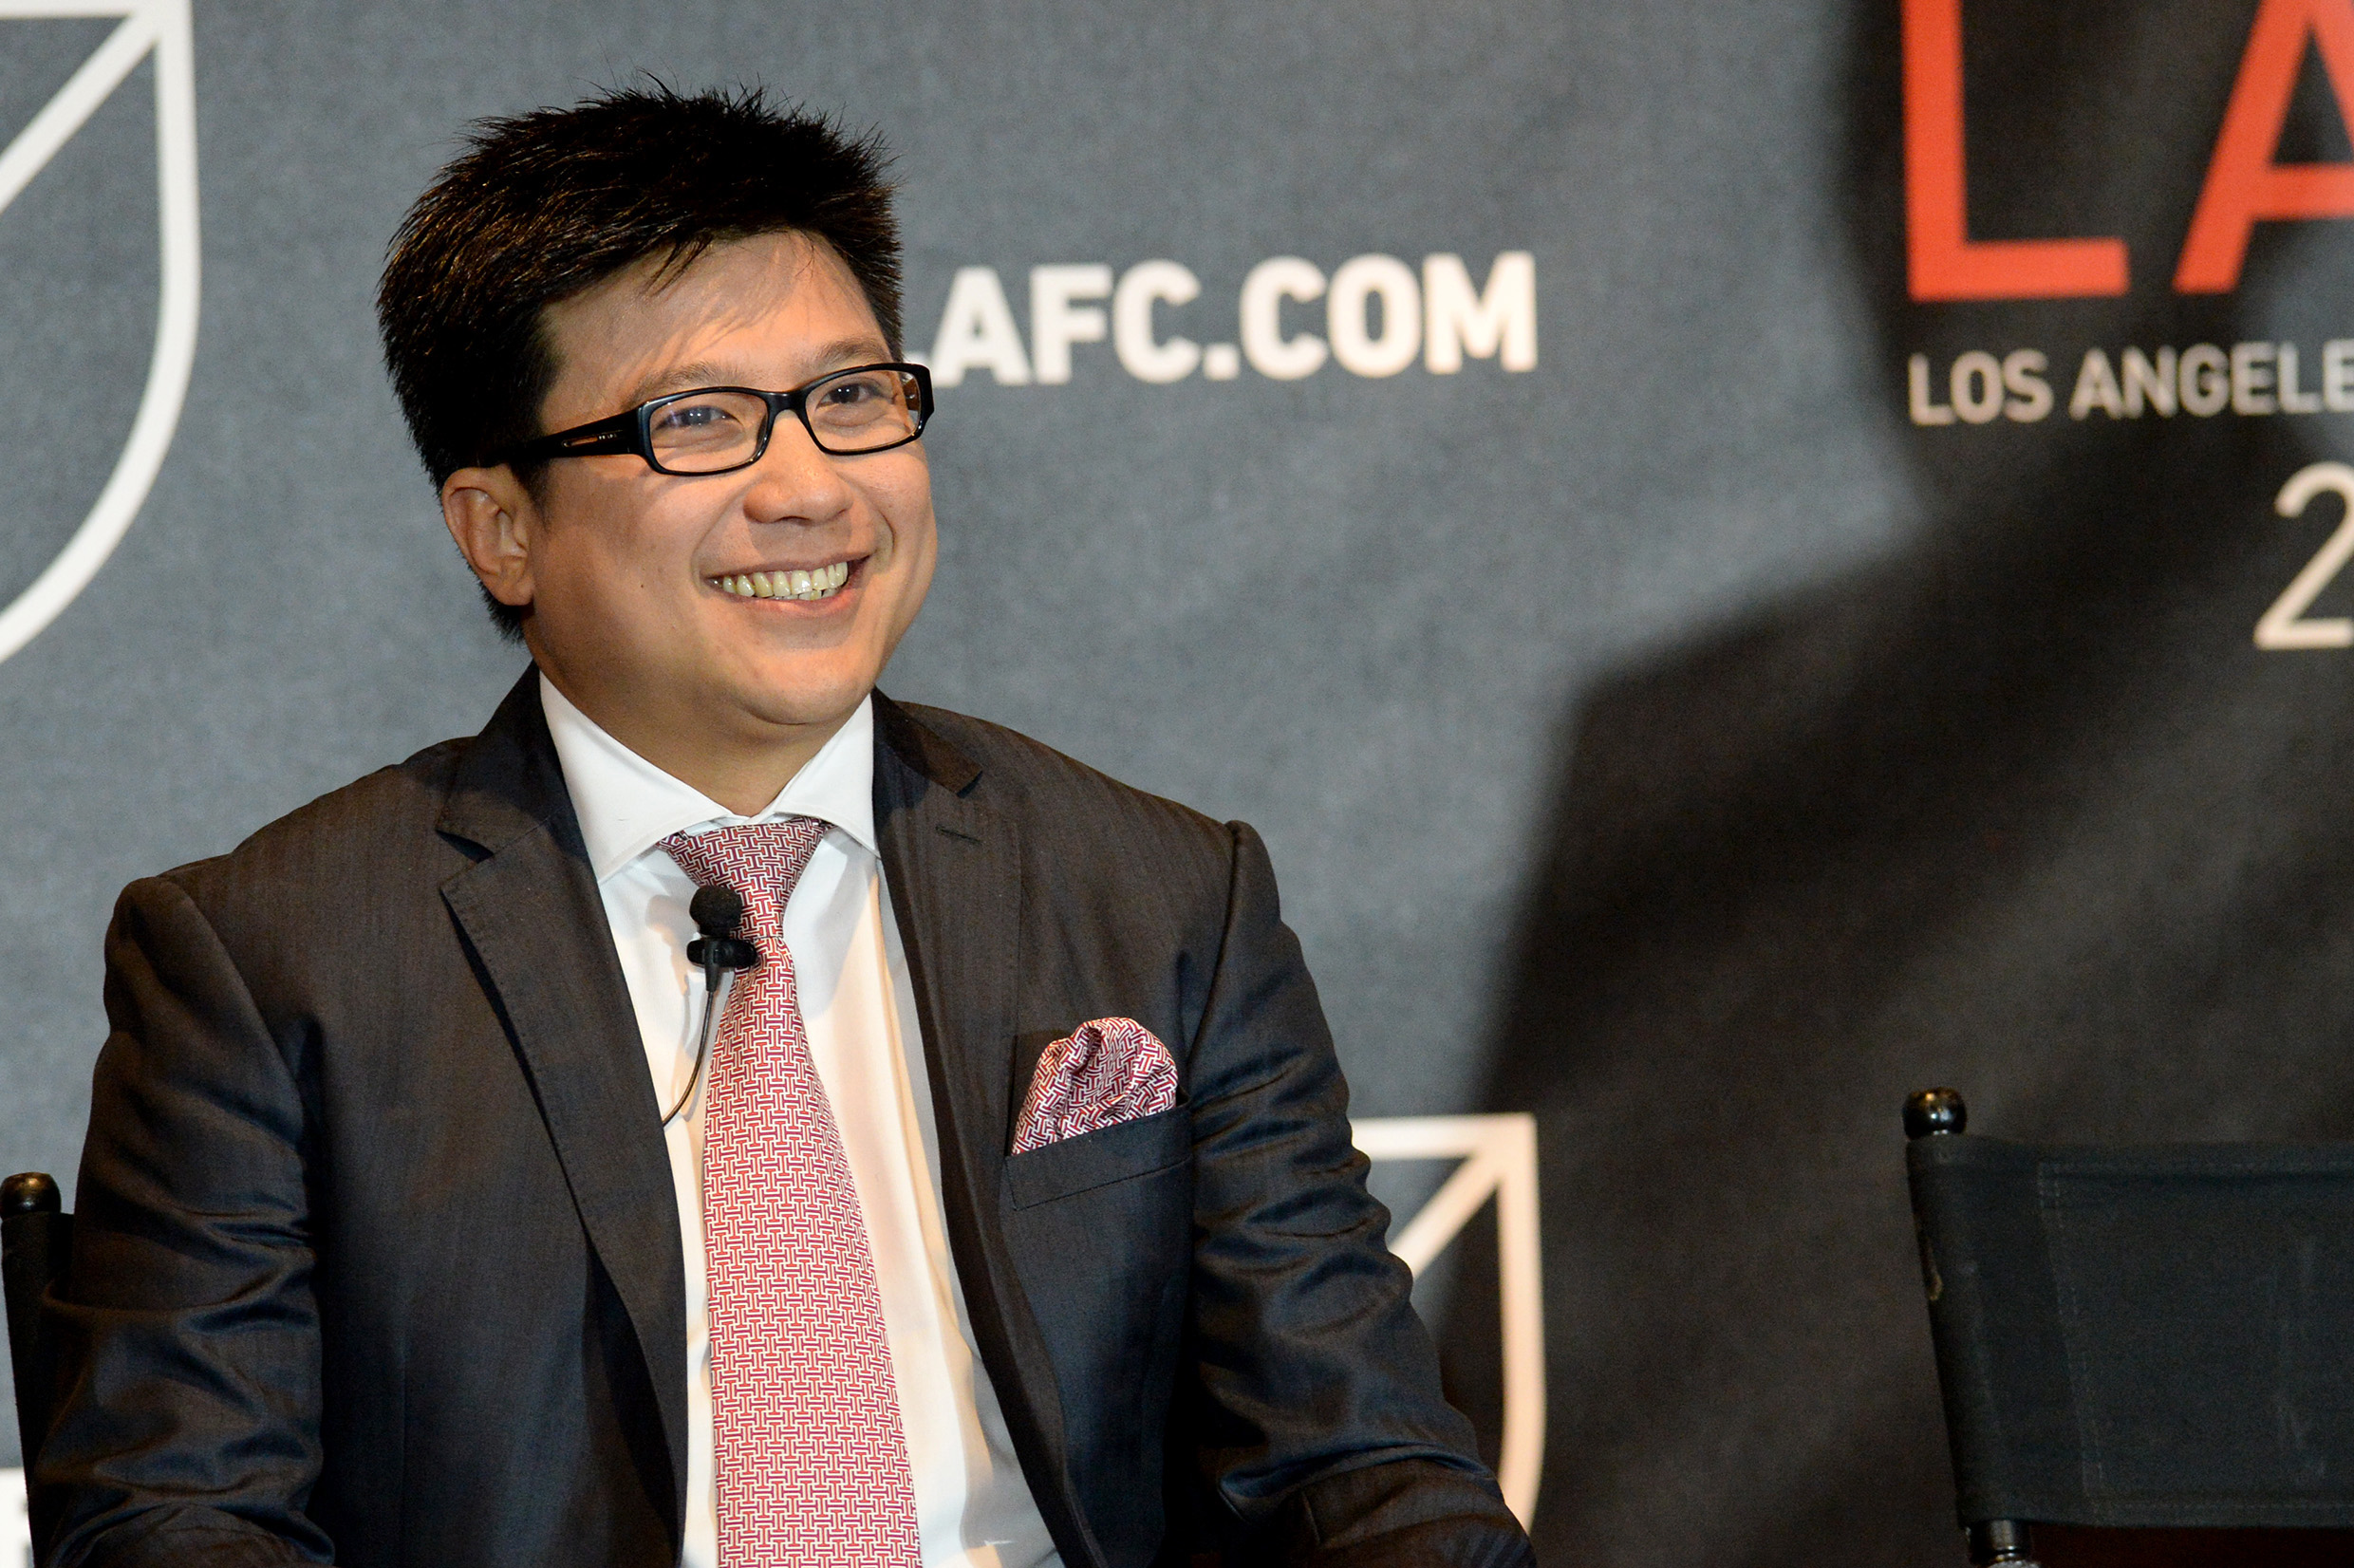 Nguyen: The stadium is still the only priority right now.